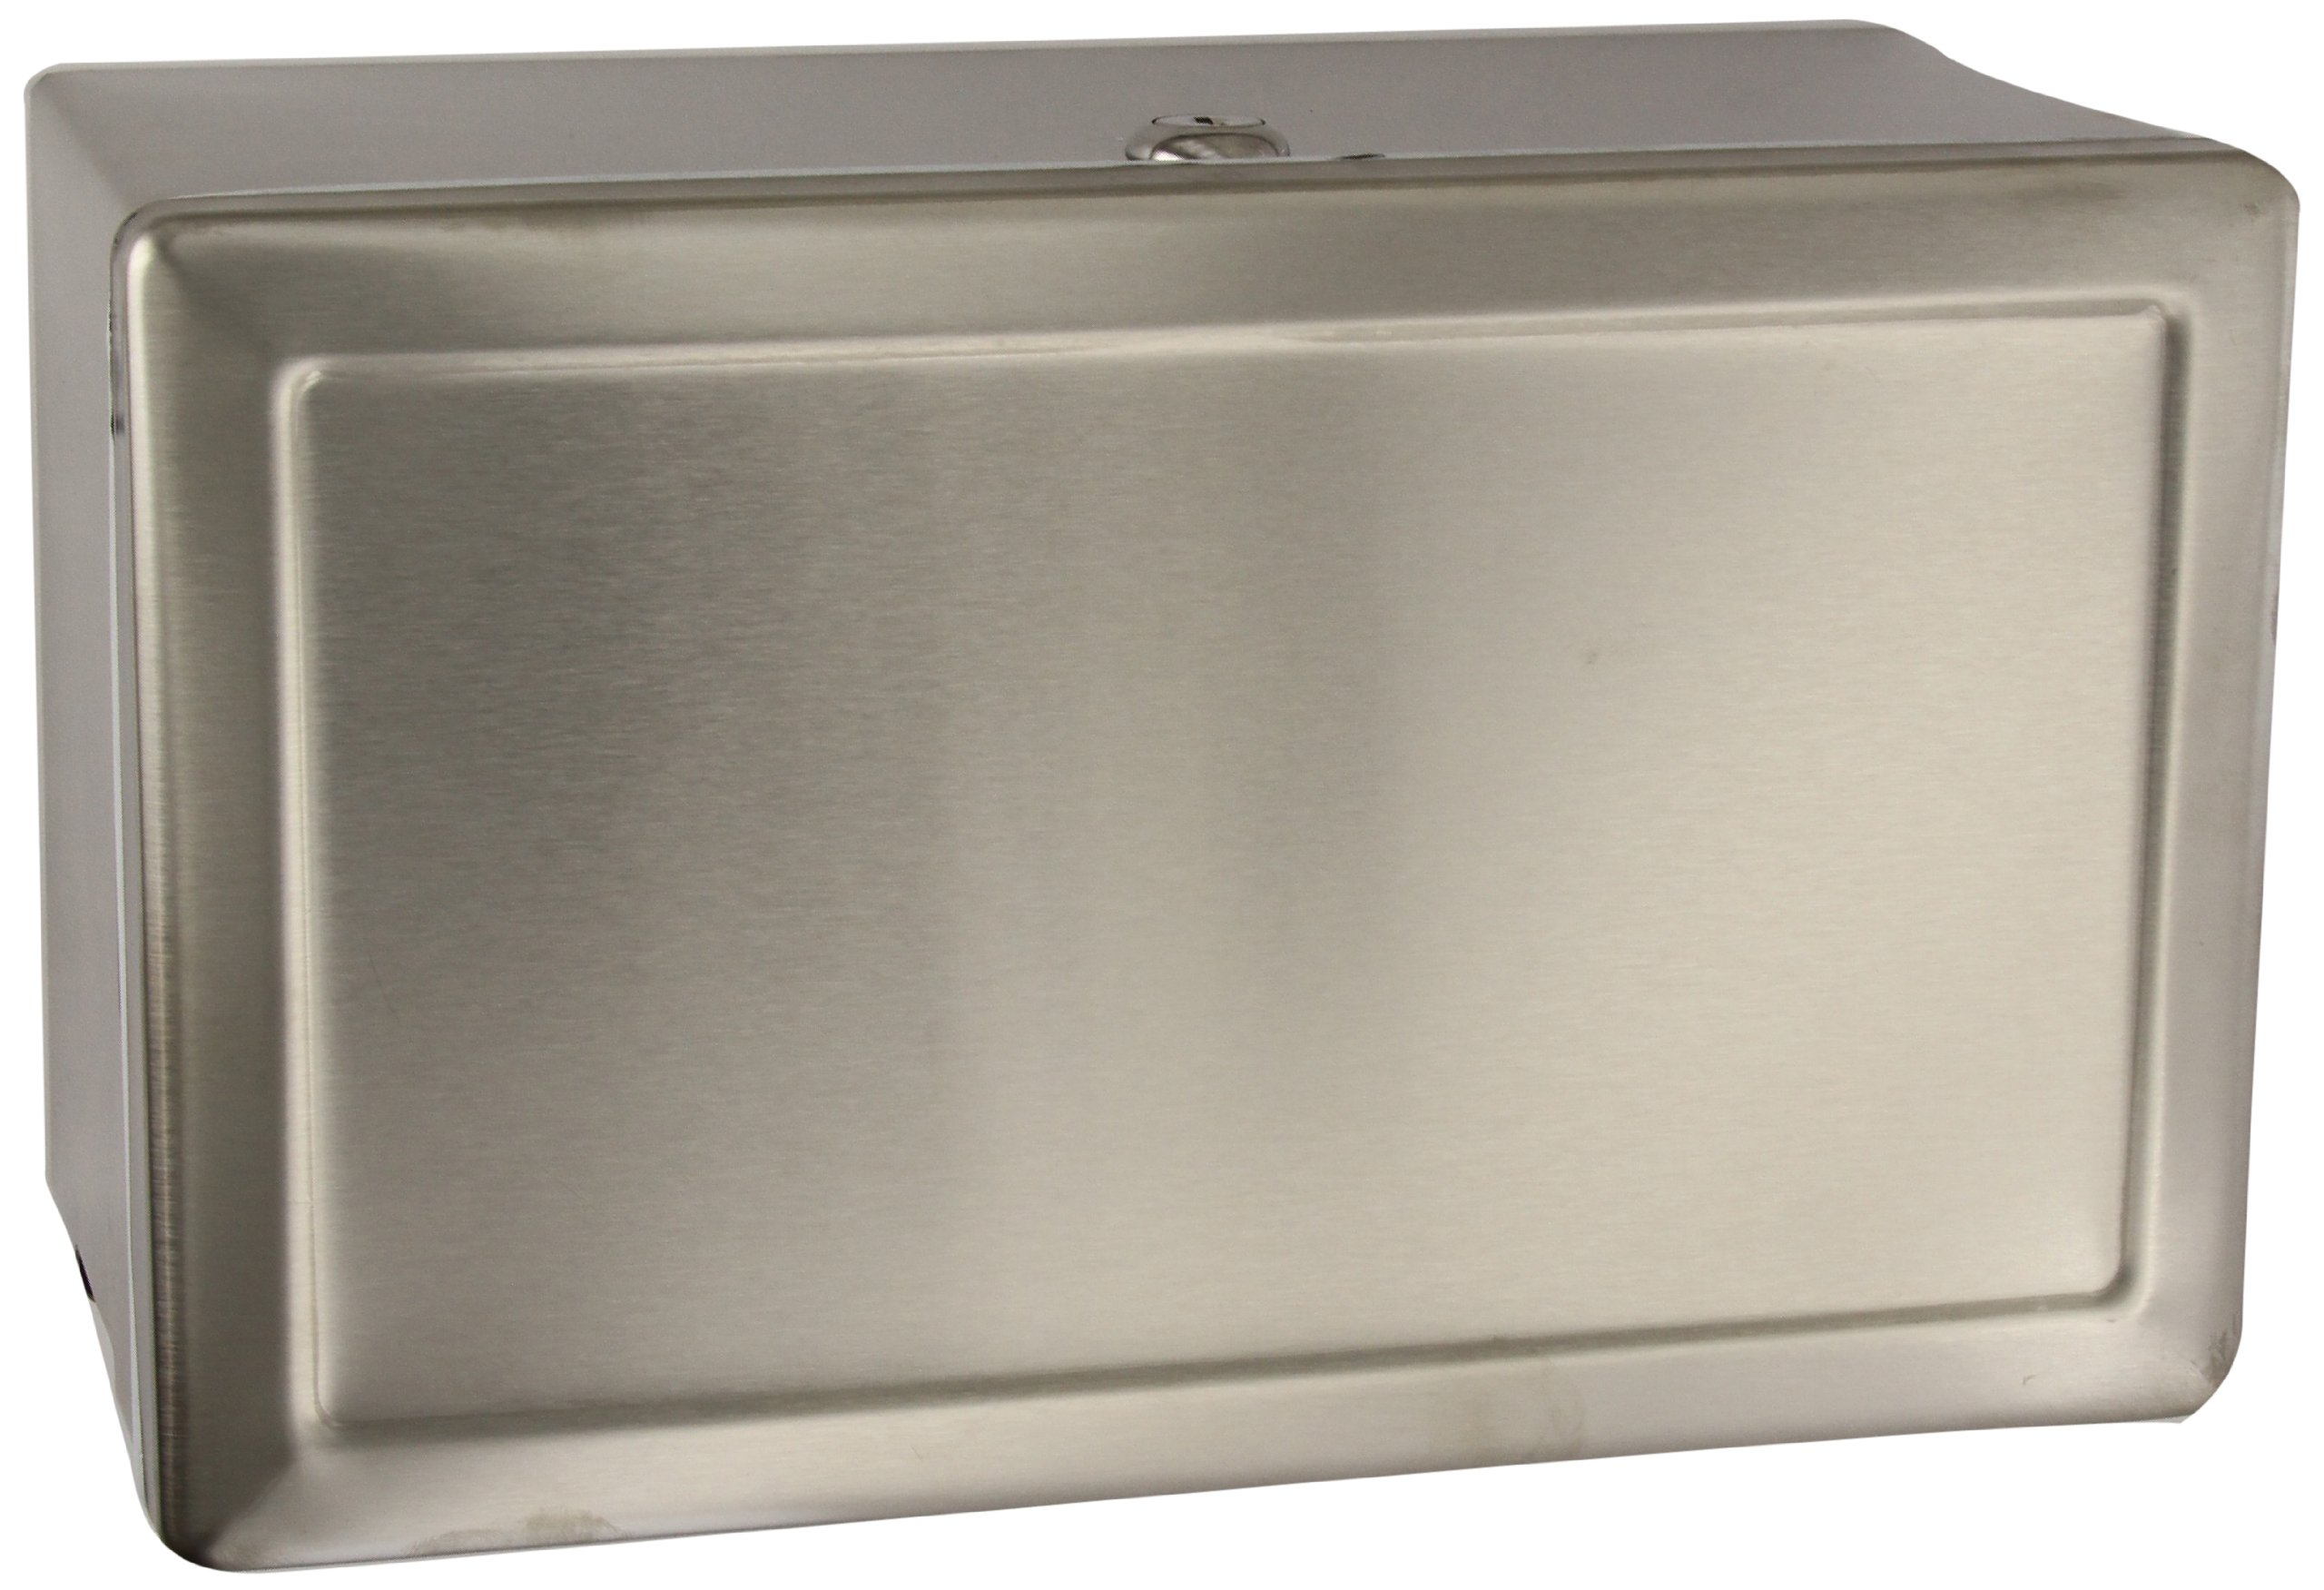 Bobrick B-263 Stainless Steel Surface-Mounted Paper Towel Dispenser